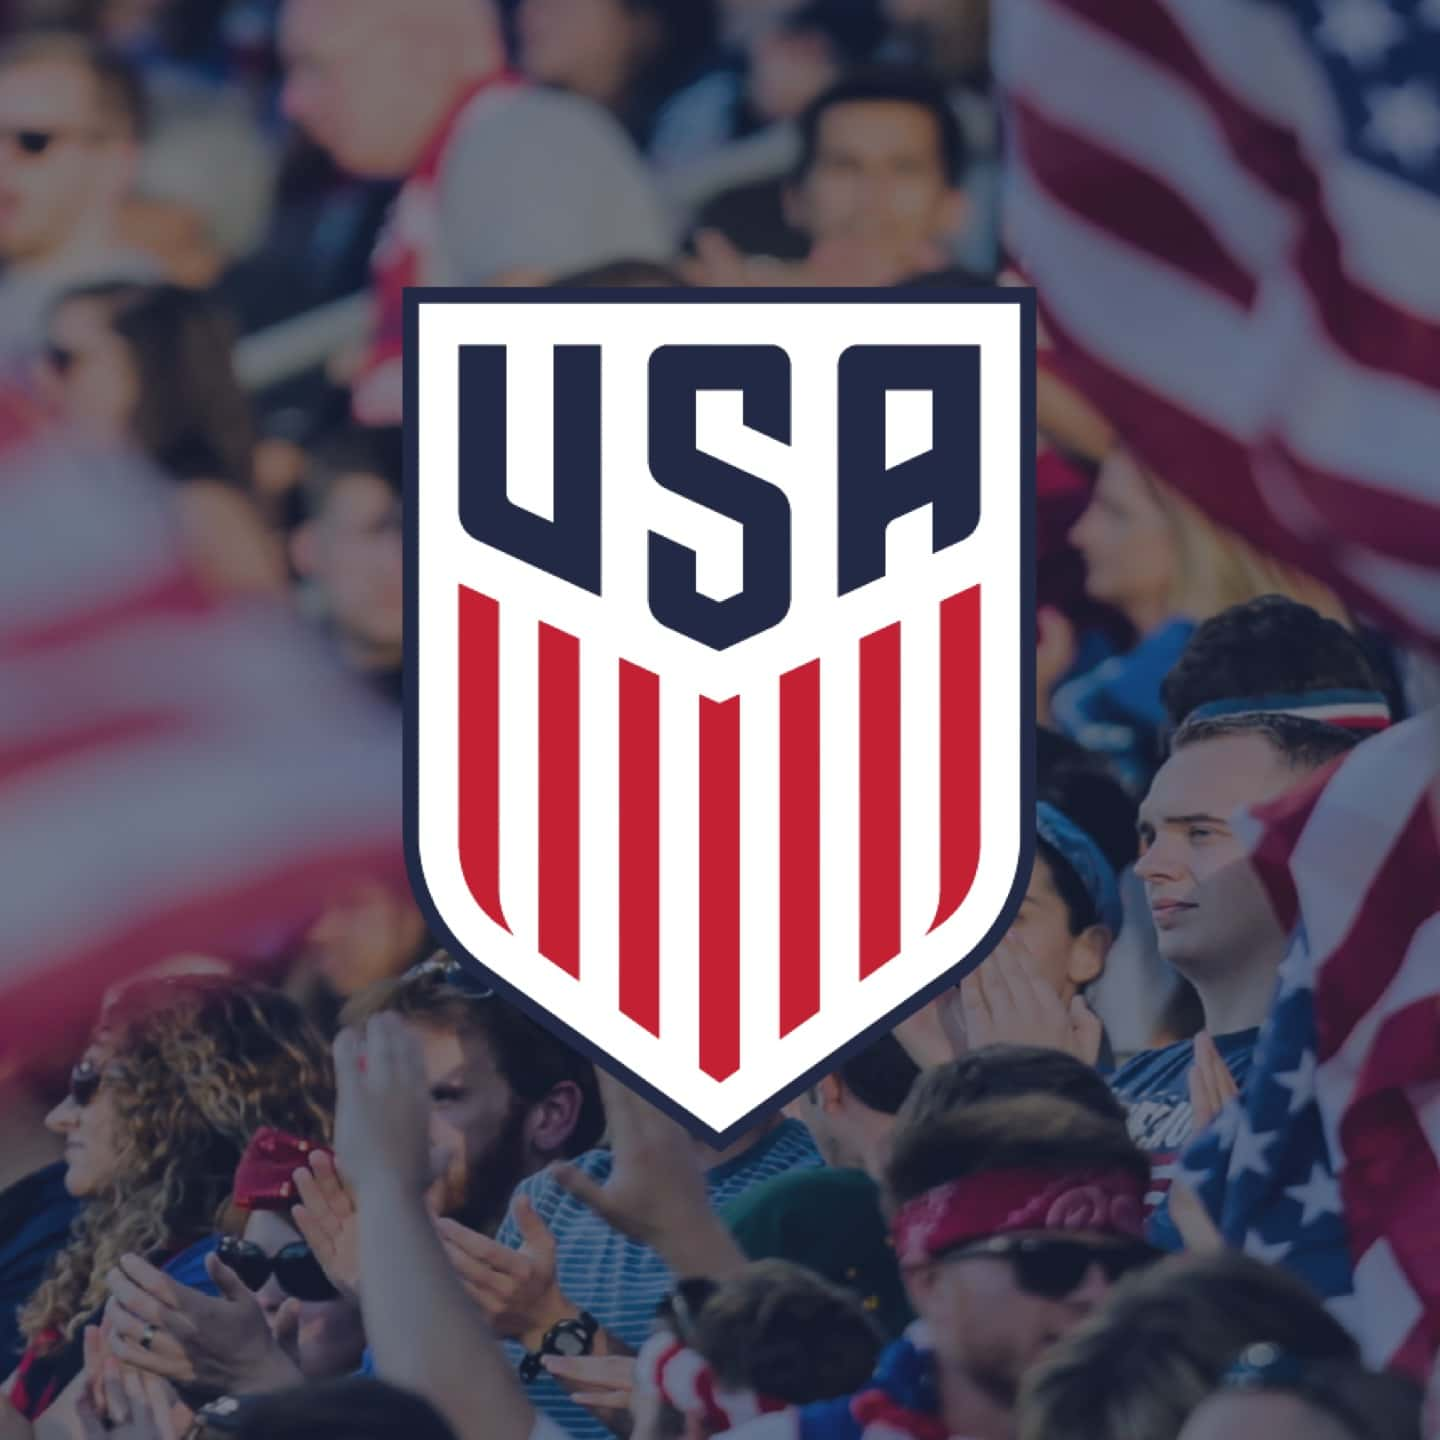 US Soccer Cancels Upcoming Men's and Women's Senior National Team Matches in March and April Due to Covid-19 Outbreak - U.S. Soccer